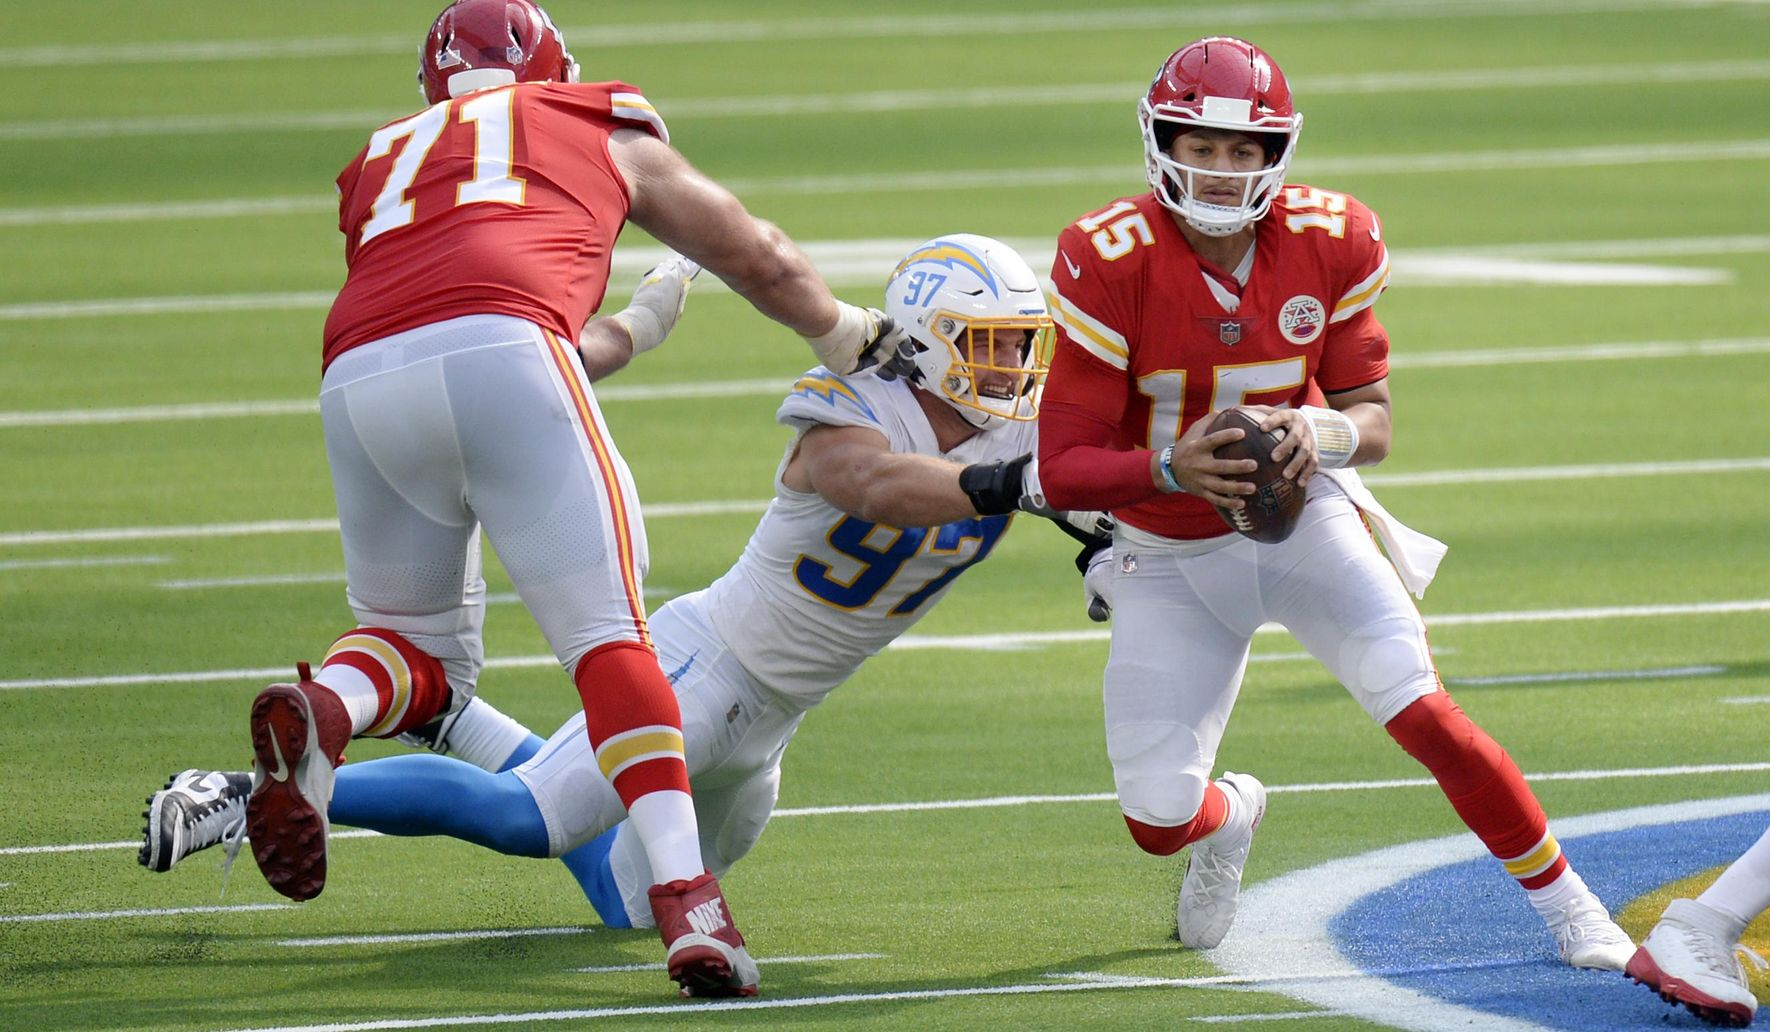 Chiefs_chargers_football_56577_c0-110-2656-1658_s1770x1032